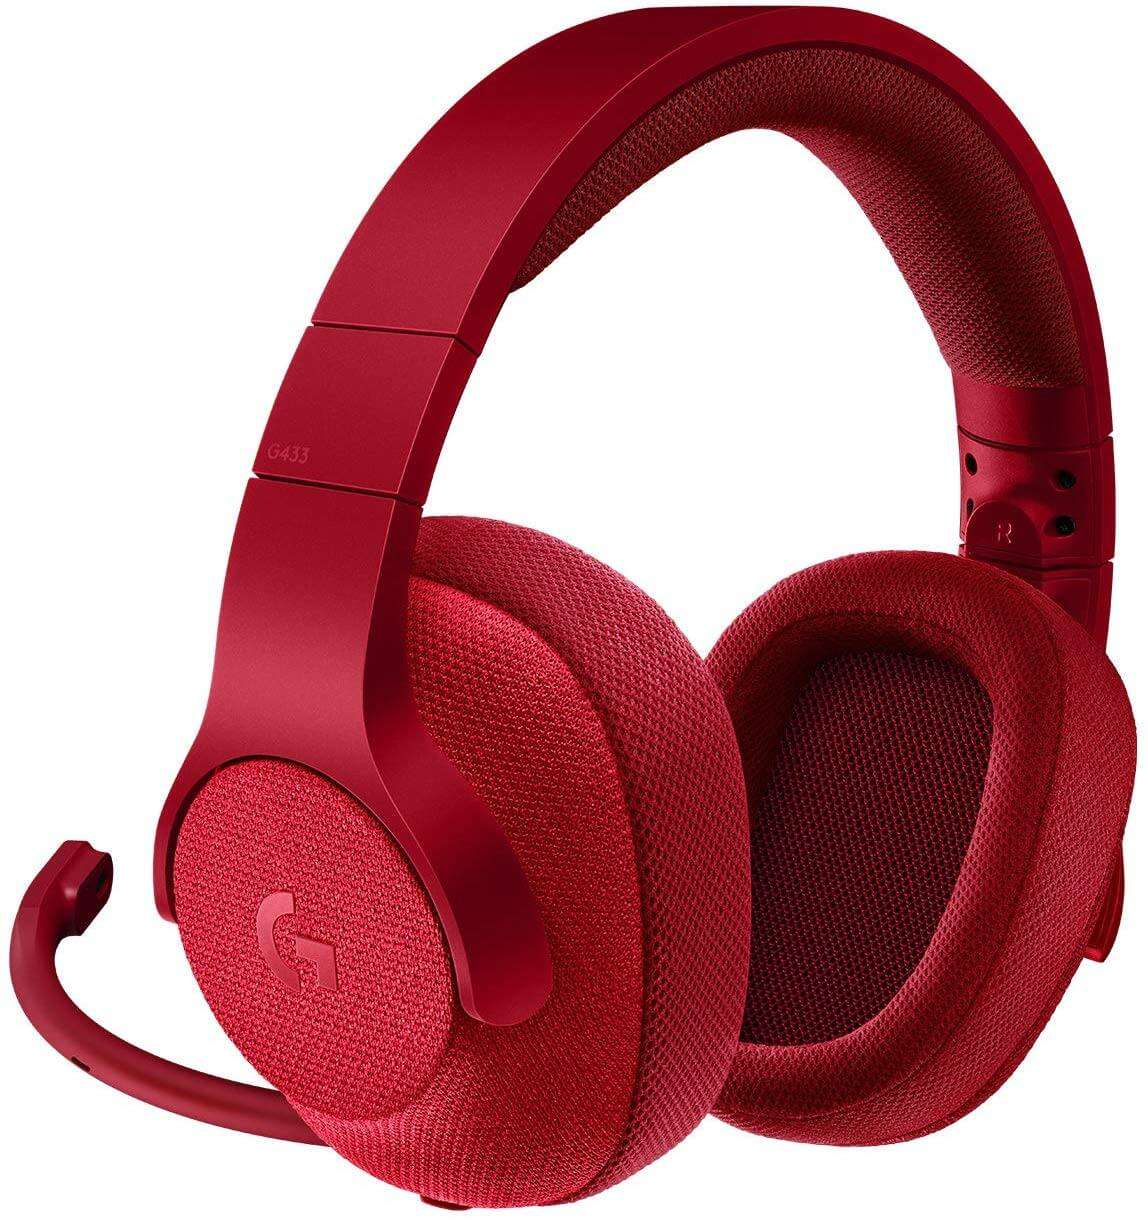 Logitech G433 Wired Gaming Headset - Fire Red